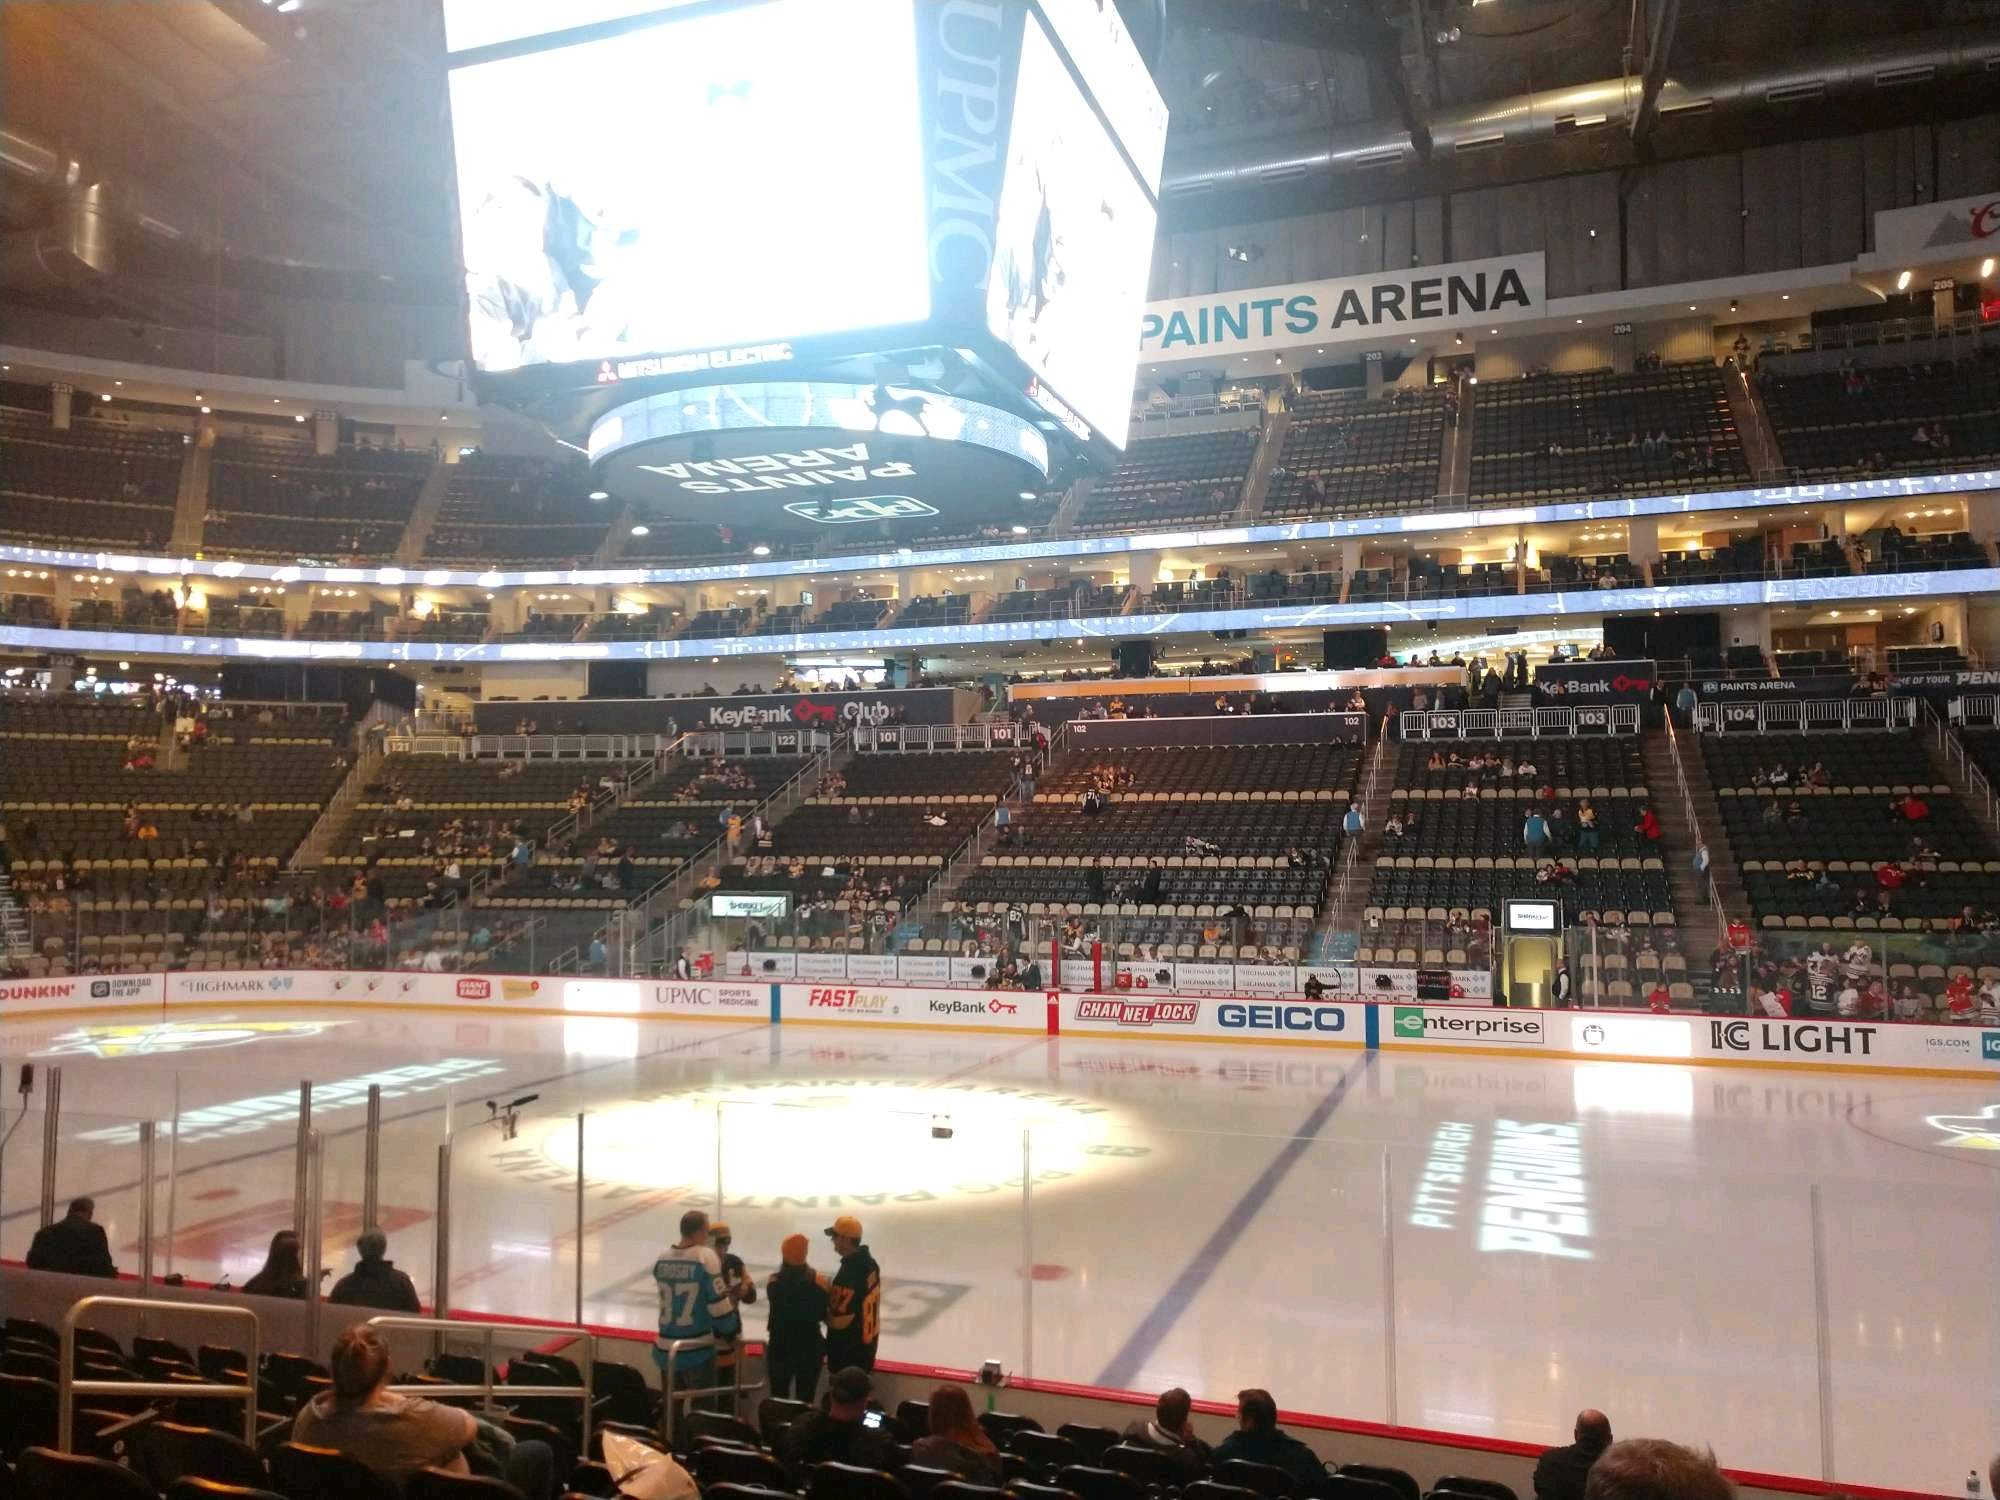 PPG Paints Arena Section 111 Row M Seat 6